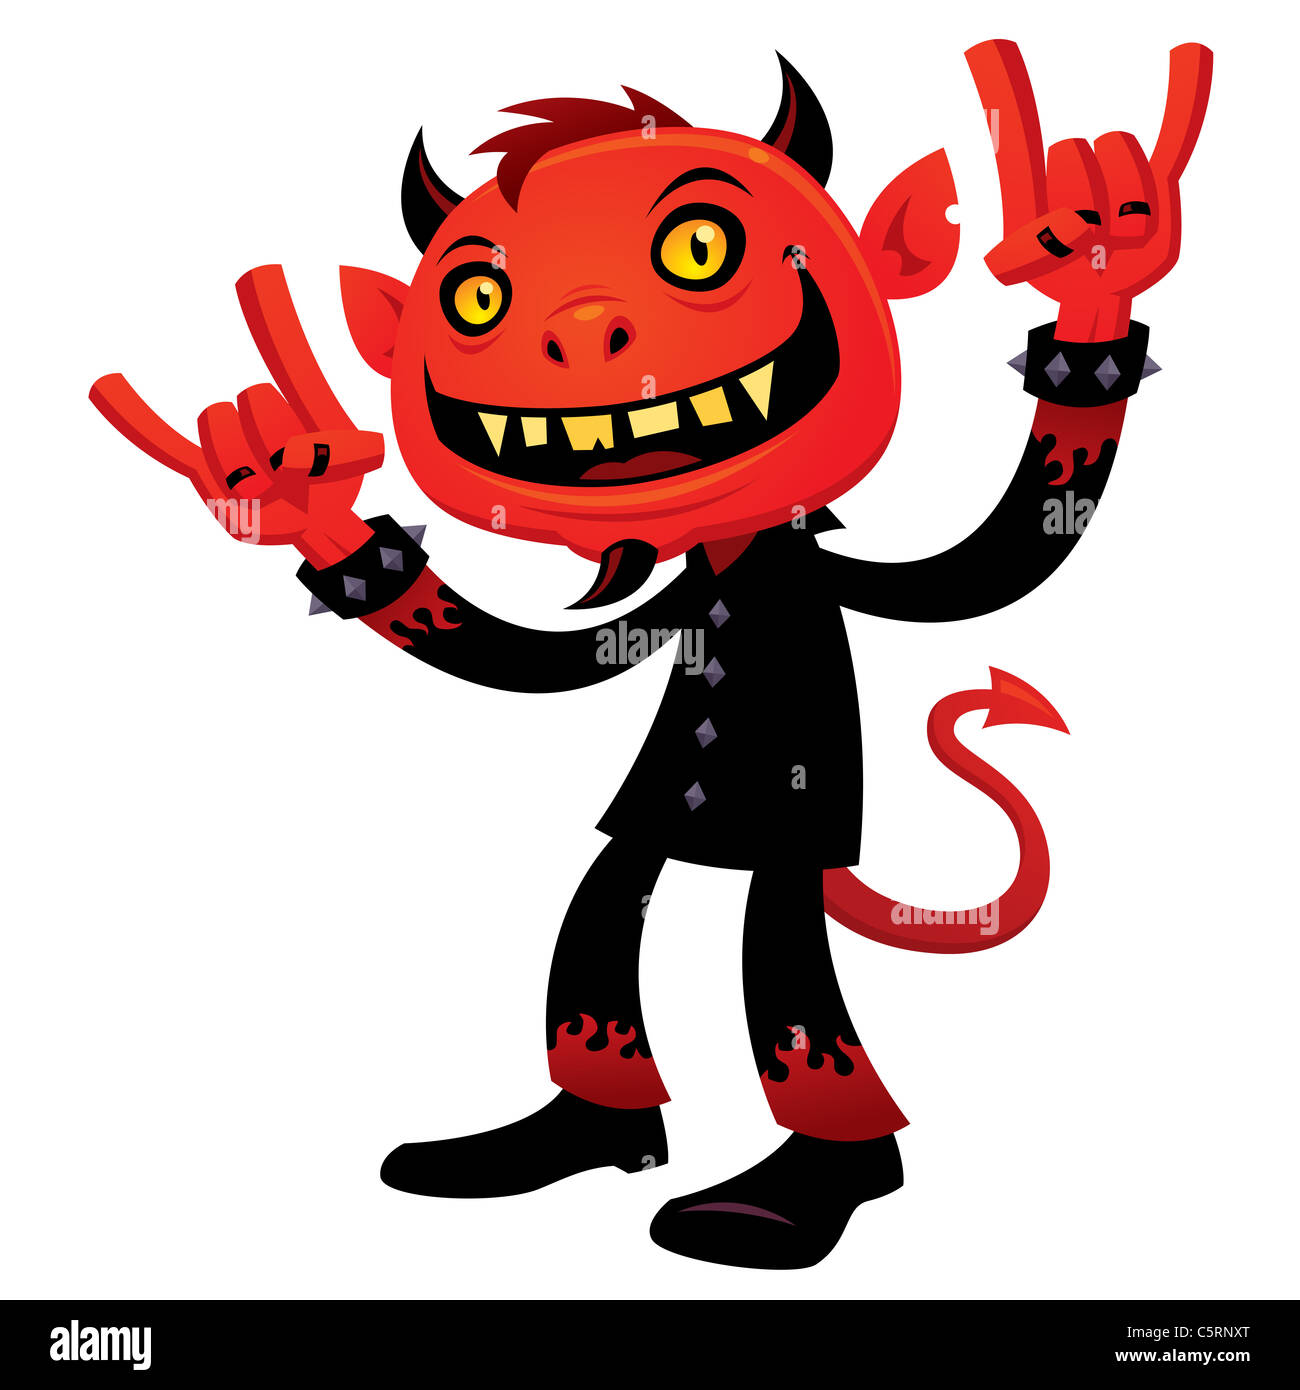 Vector cartoon illustration of a grinning devil character with heavy metal, rock and roll, devil horns hand signs. - Stock Image